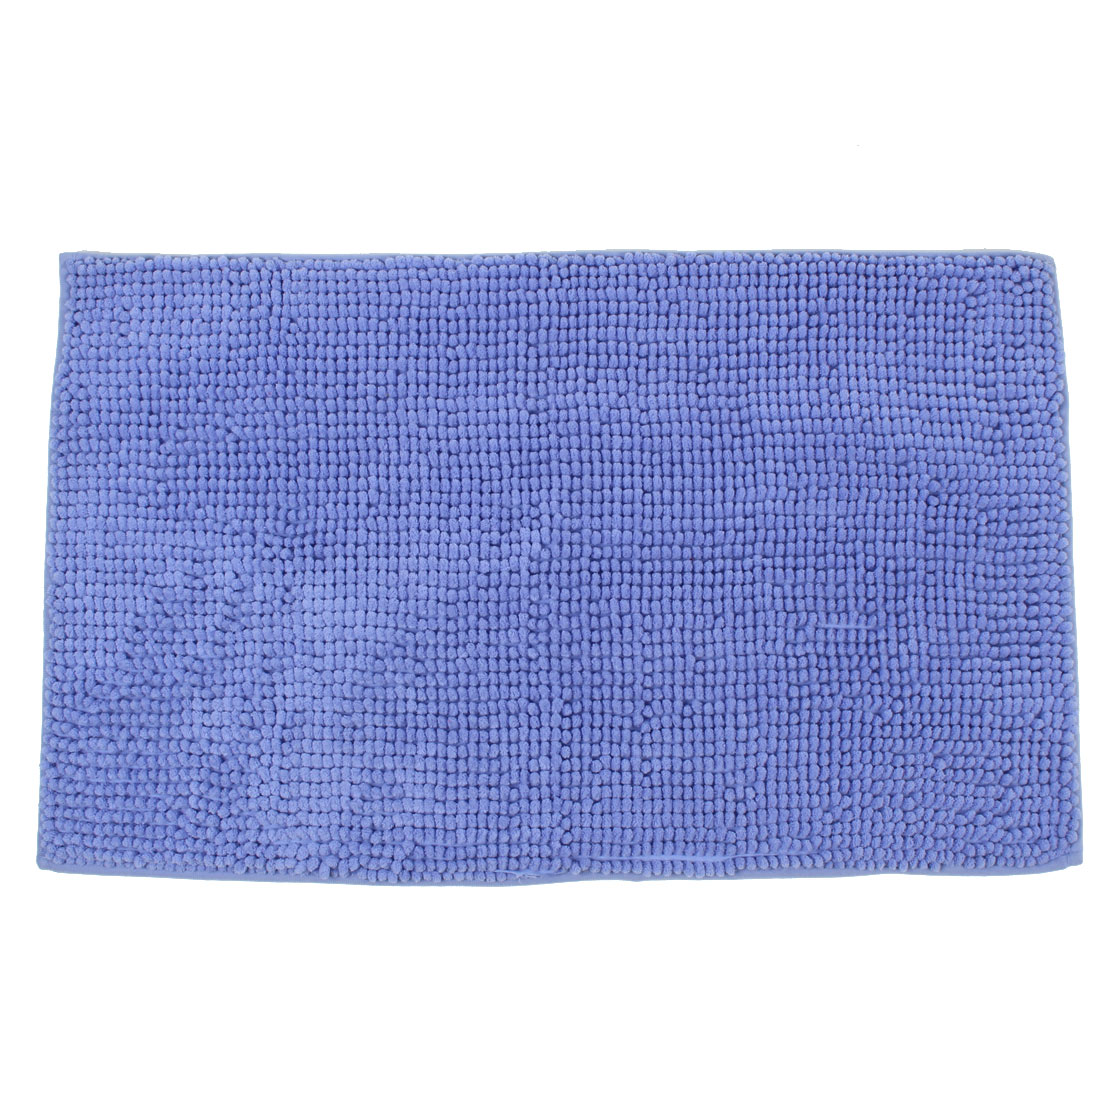 Bathroom Household Soft Non Slip Absorbent Shower Bath Mat Rugs Blue 20 x 32 Inch